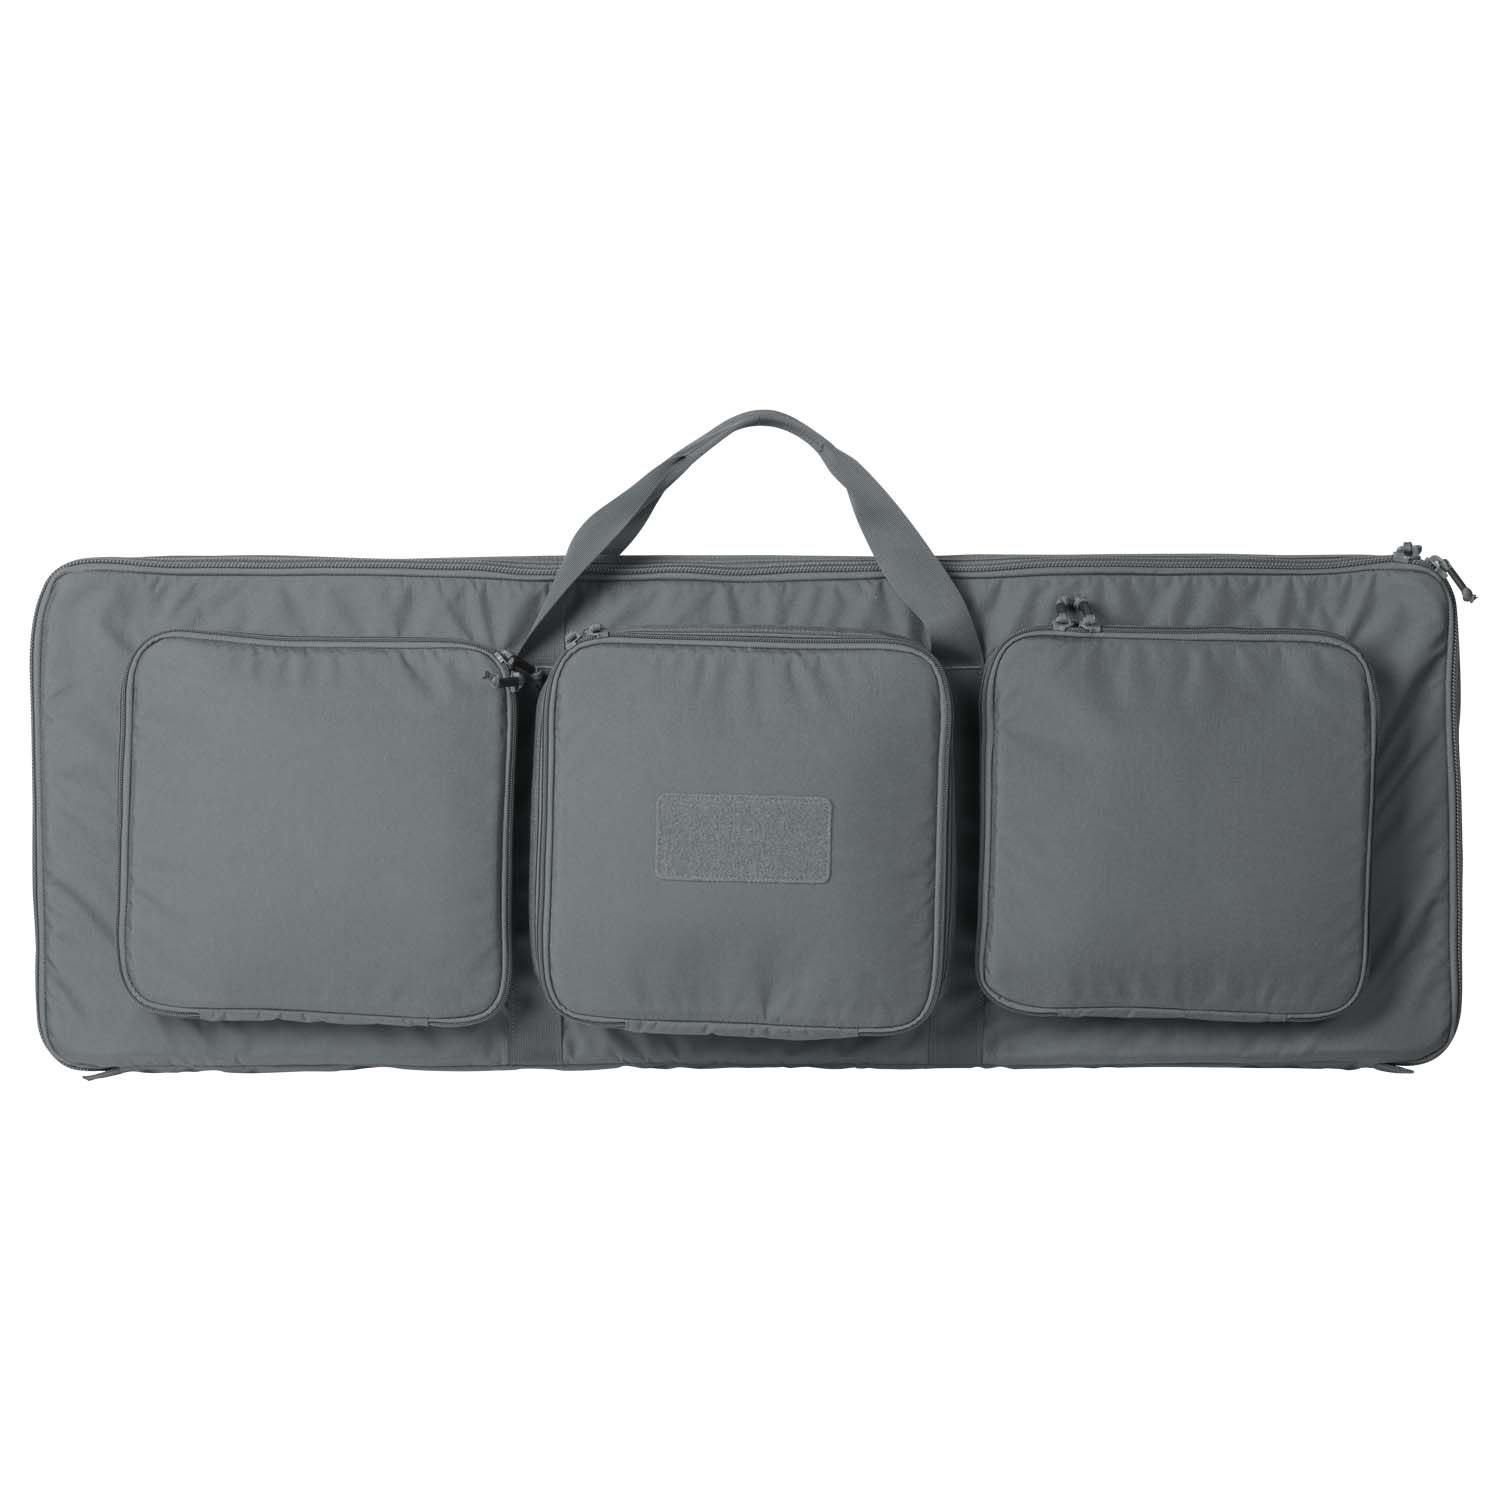 Puzdro na pušku RIFLE BAG 18® SHADOW GREY